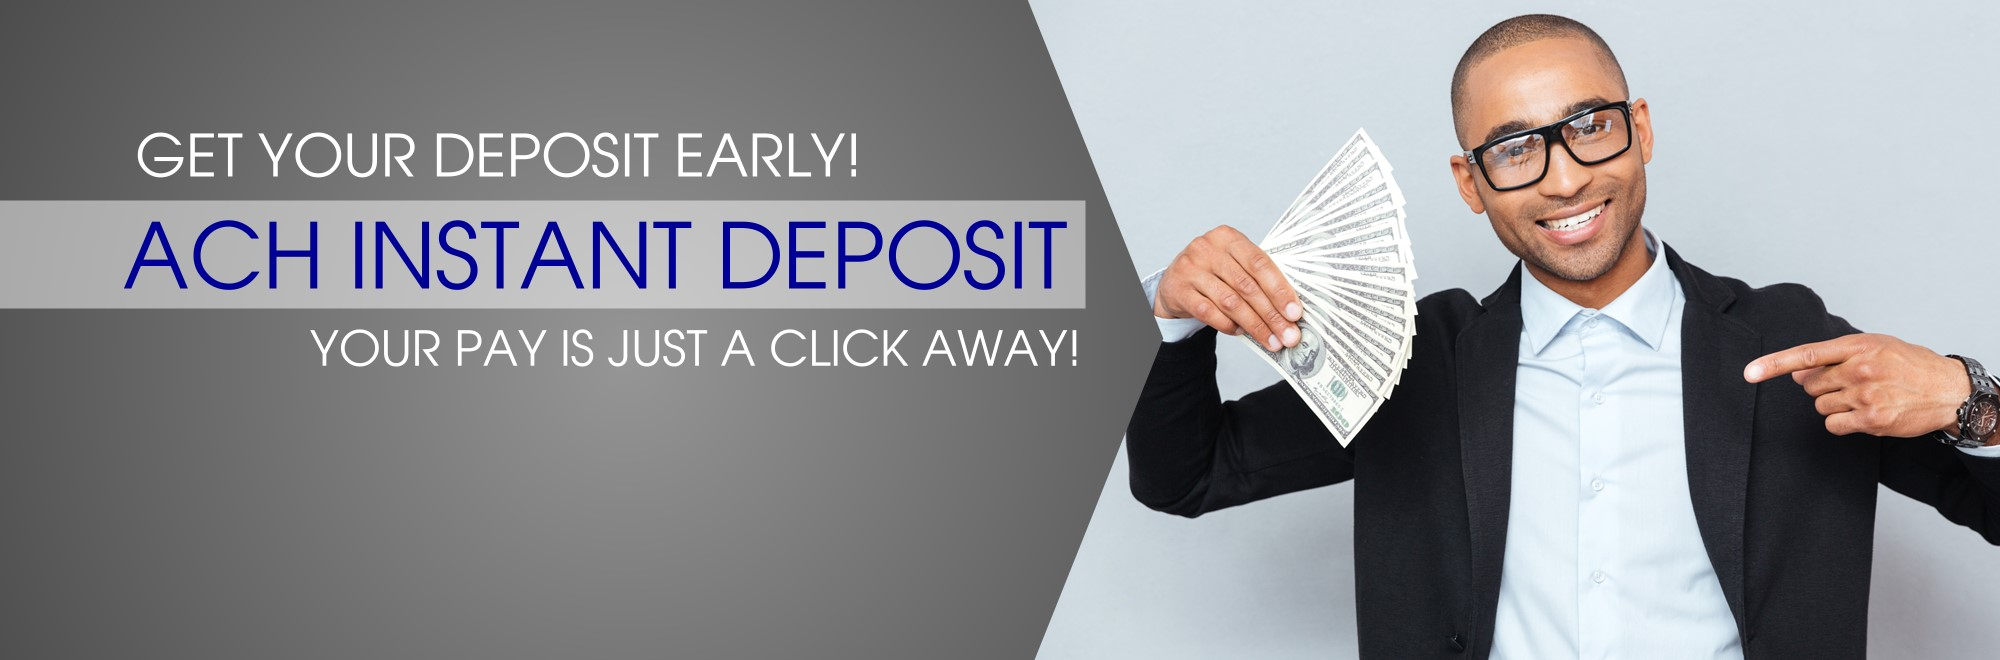 Get your deposit early! ACH Instant Deposit Your pay is just a click away!